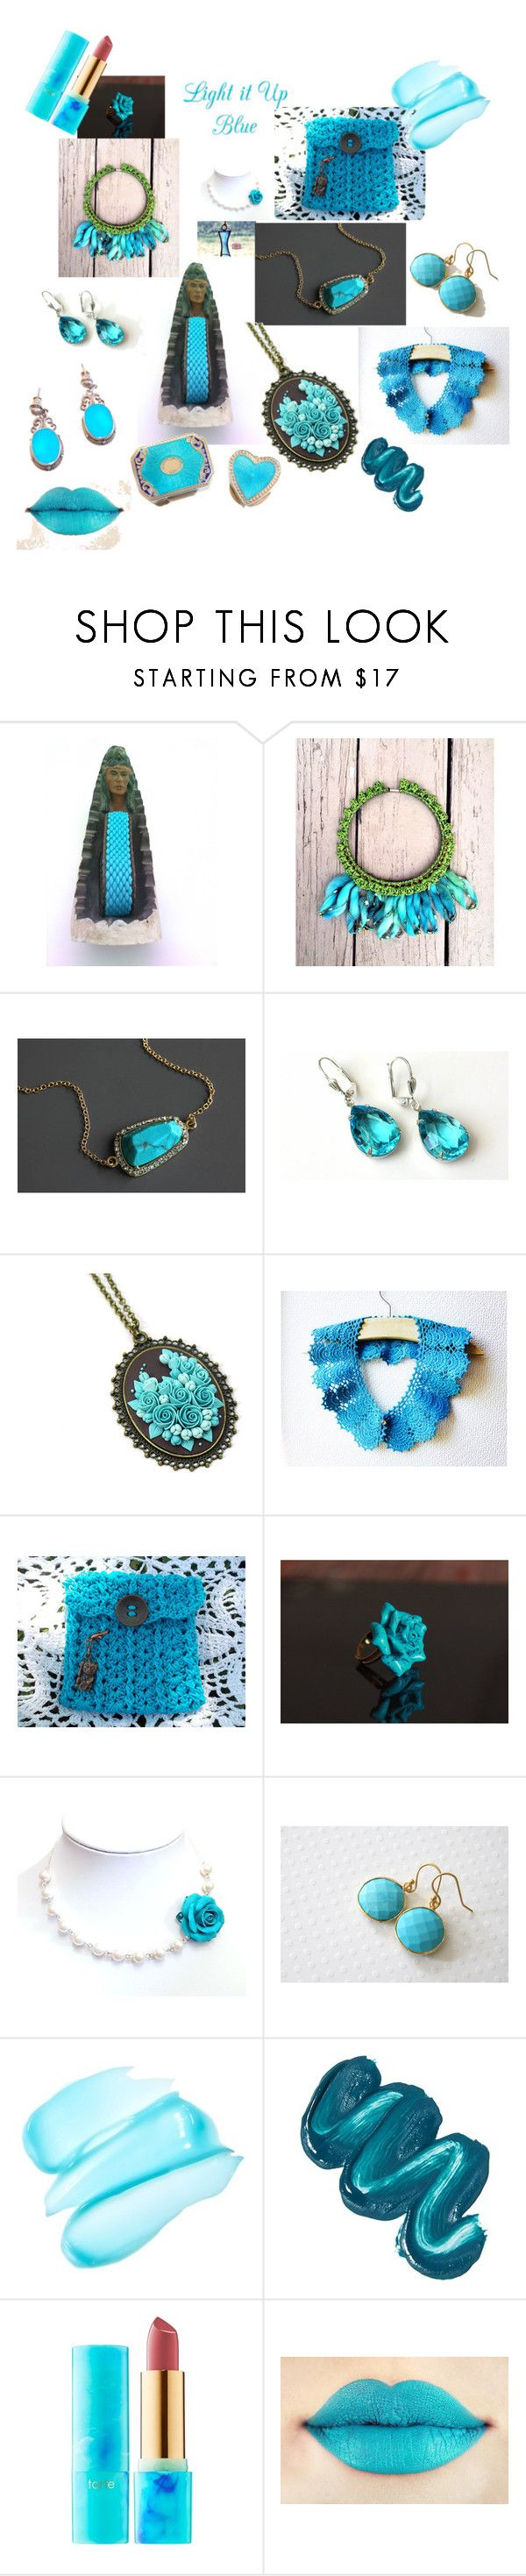 """""""Light it up...Blue"""" by justforyouhm ❤ liked on Polyvore featuring Oggetti, GlamGlow, Mermaid Salon and tarte"""